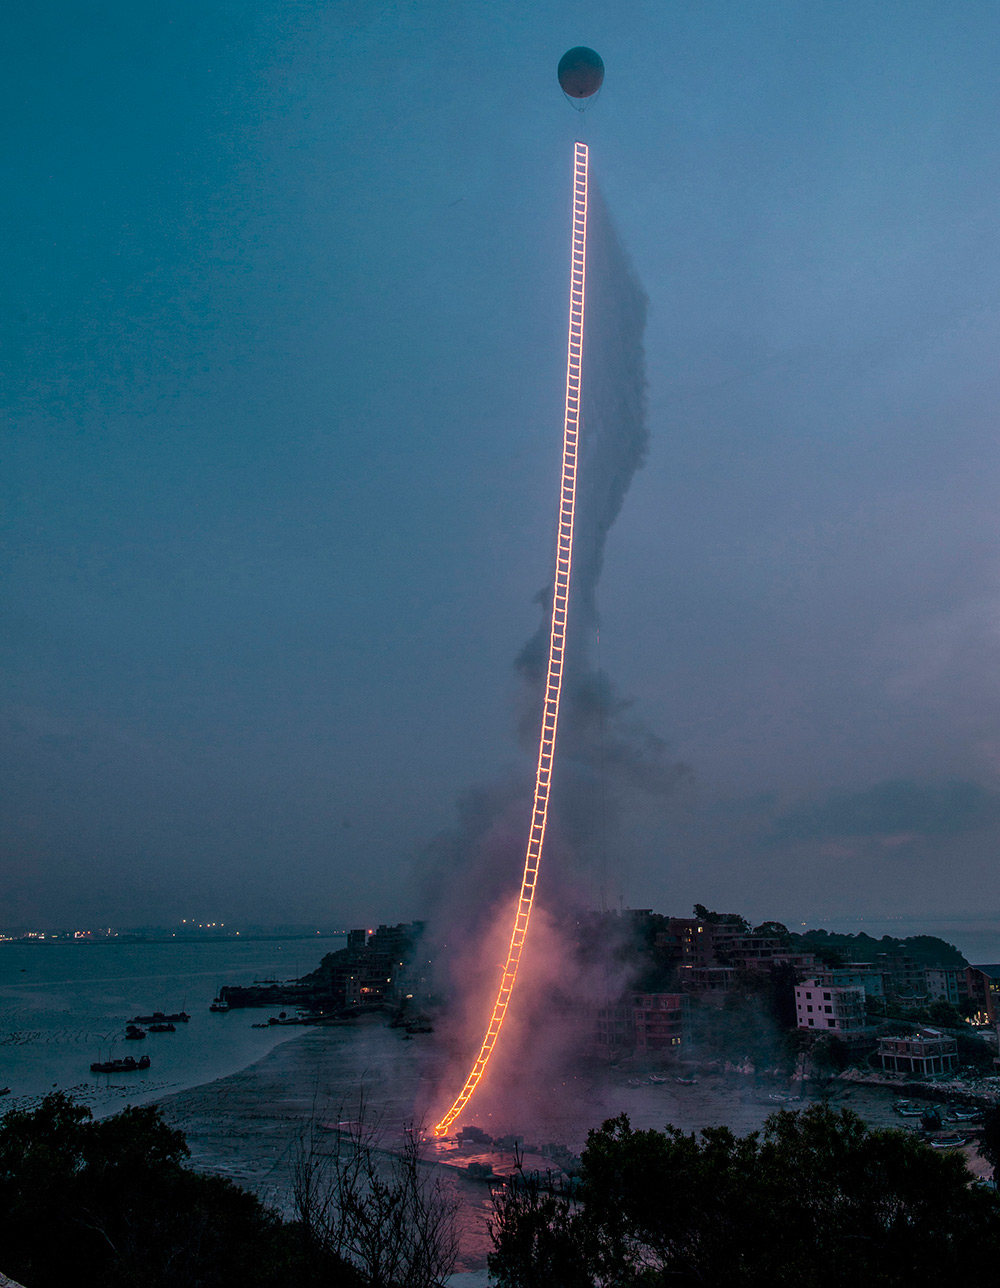 Sky Ladder by Cai Guo-Qiang